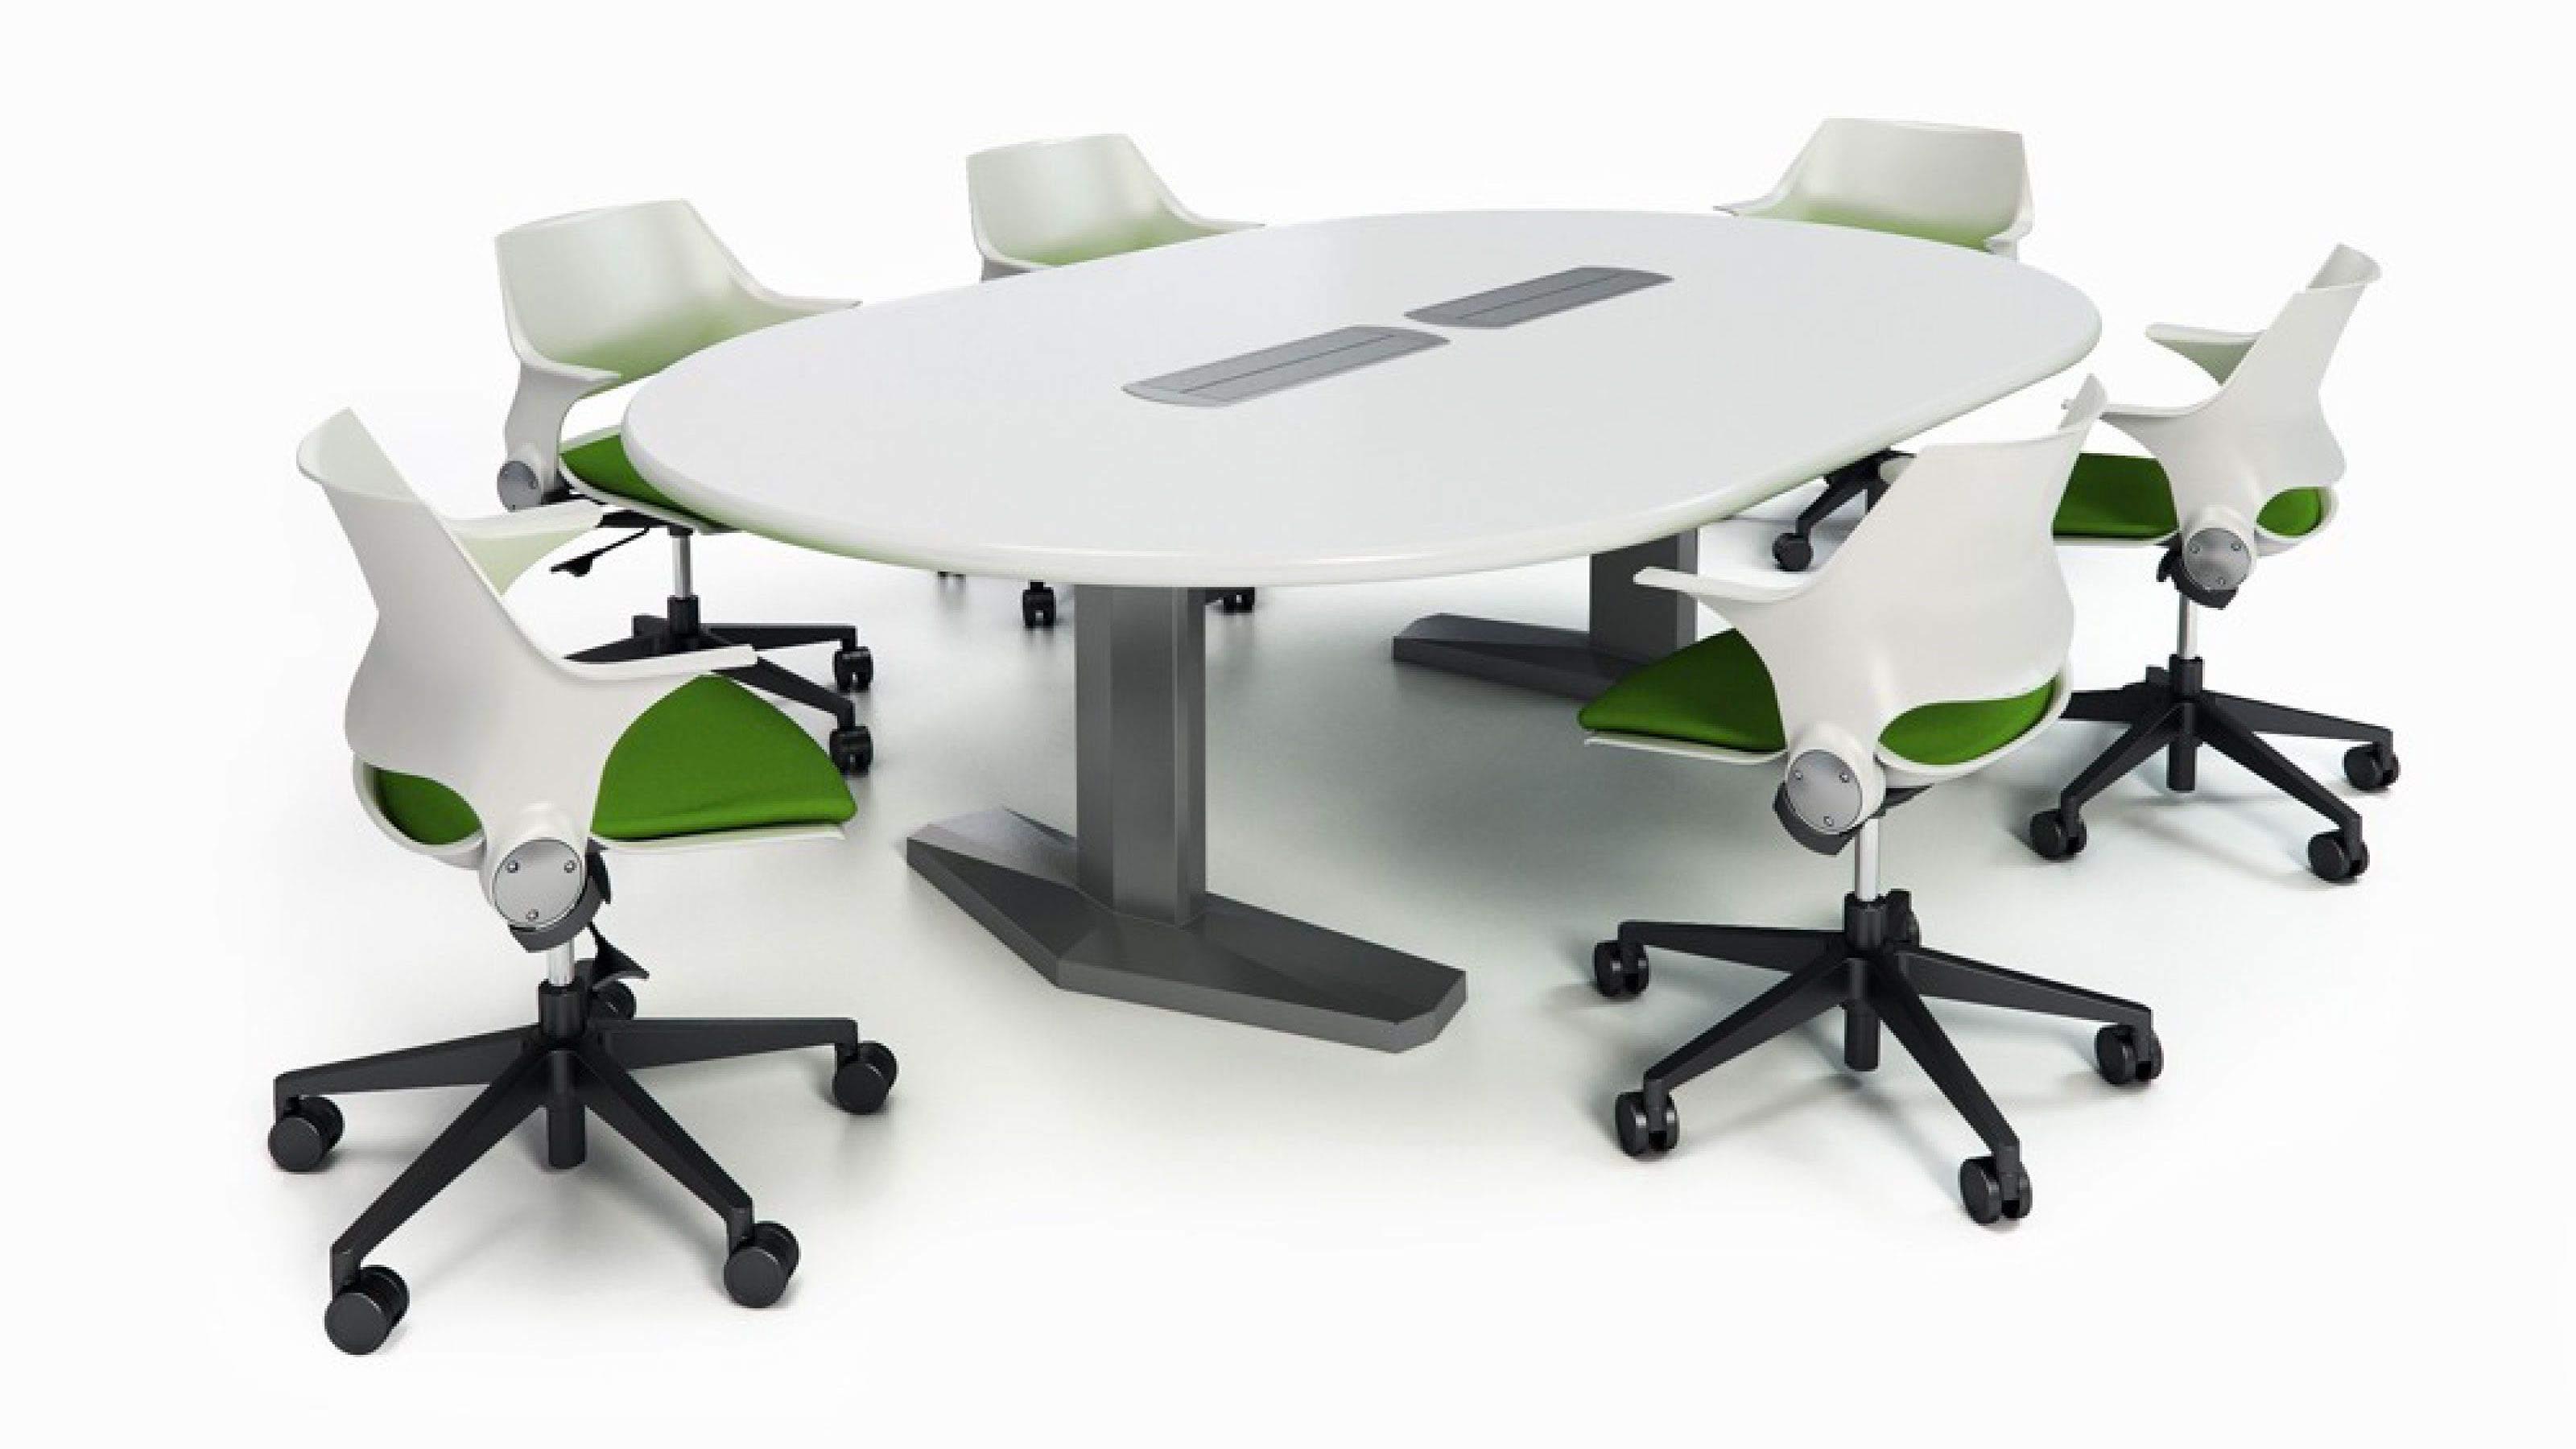 e table 2 steelcase options office table conference table rh pinterest com